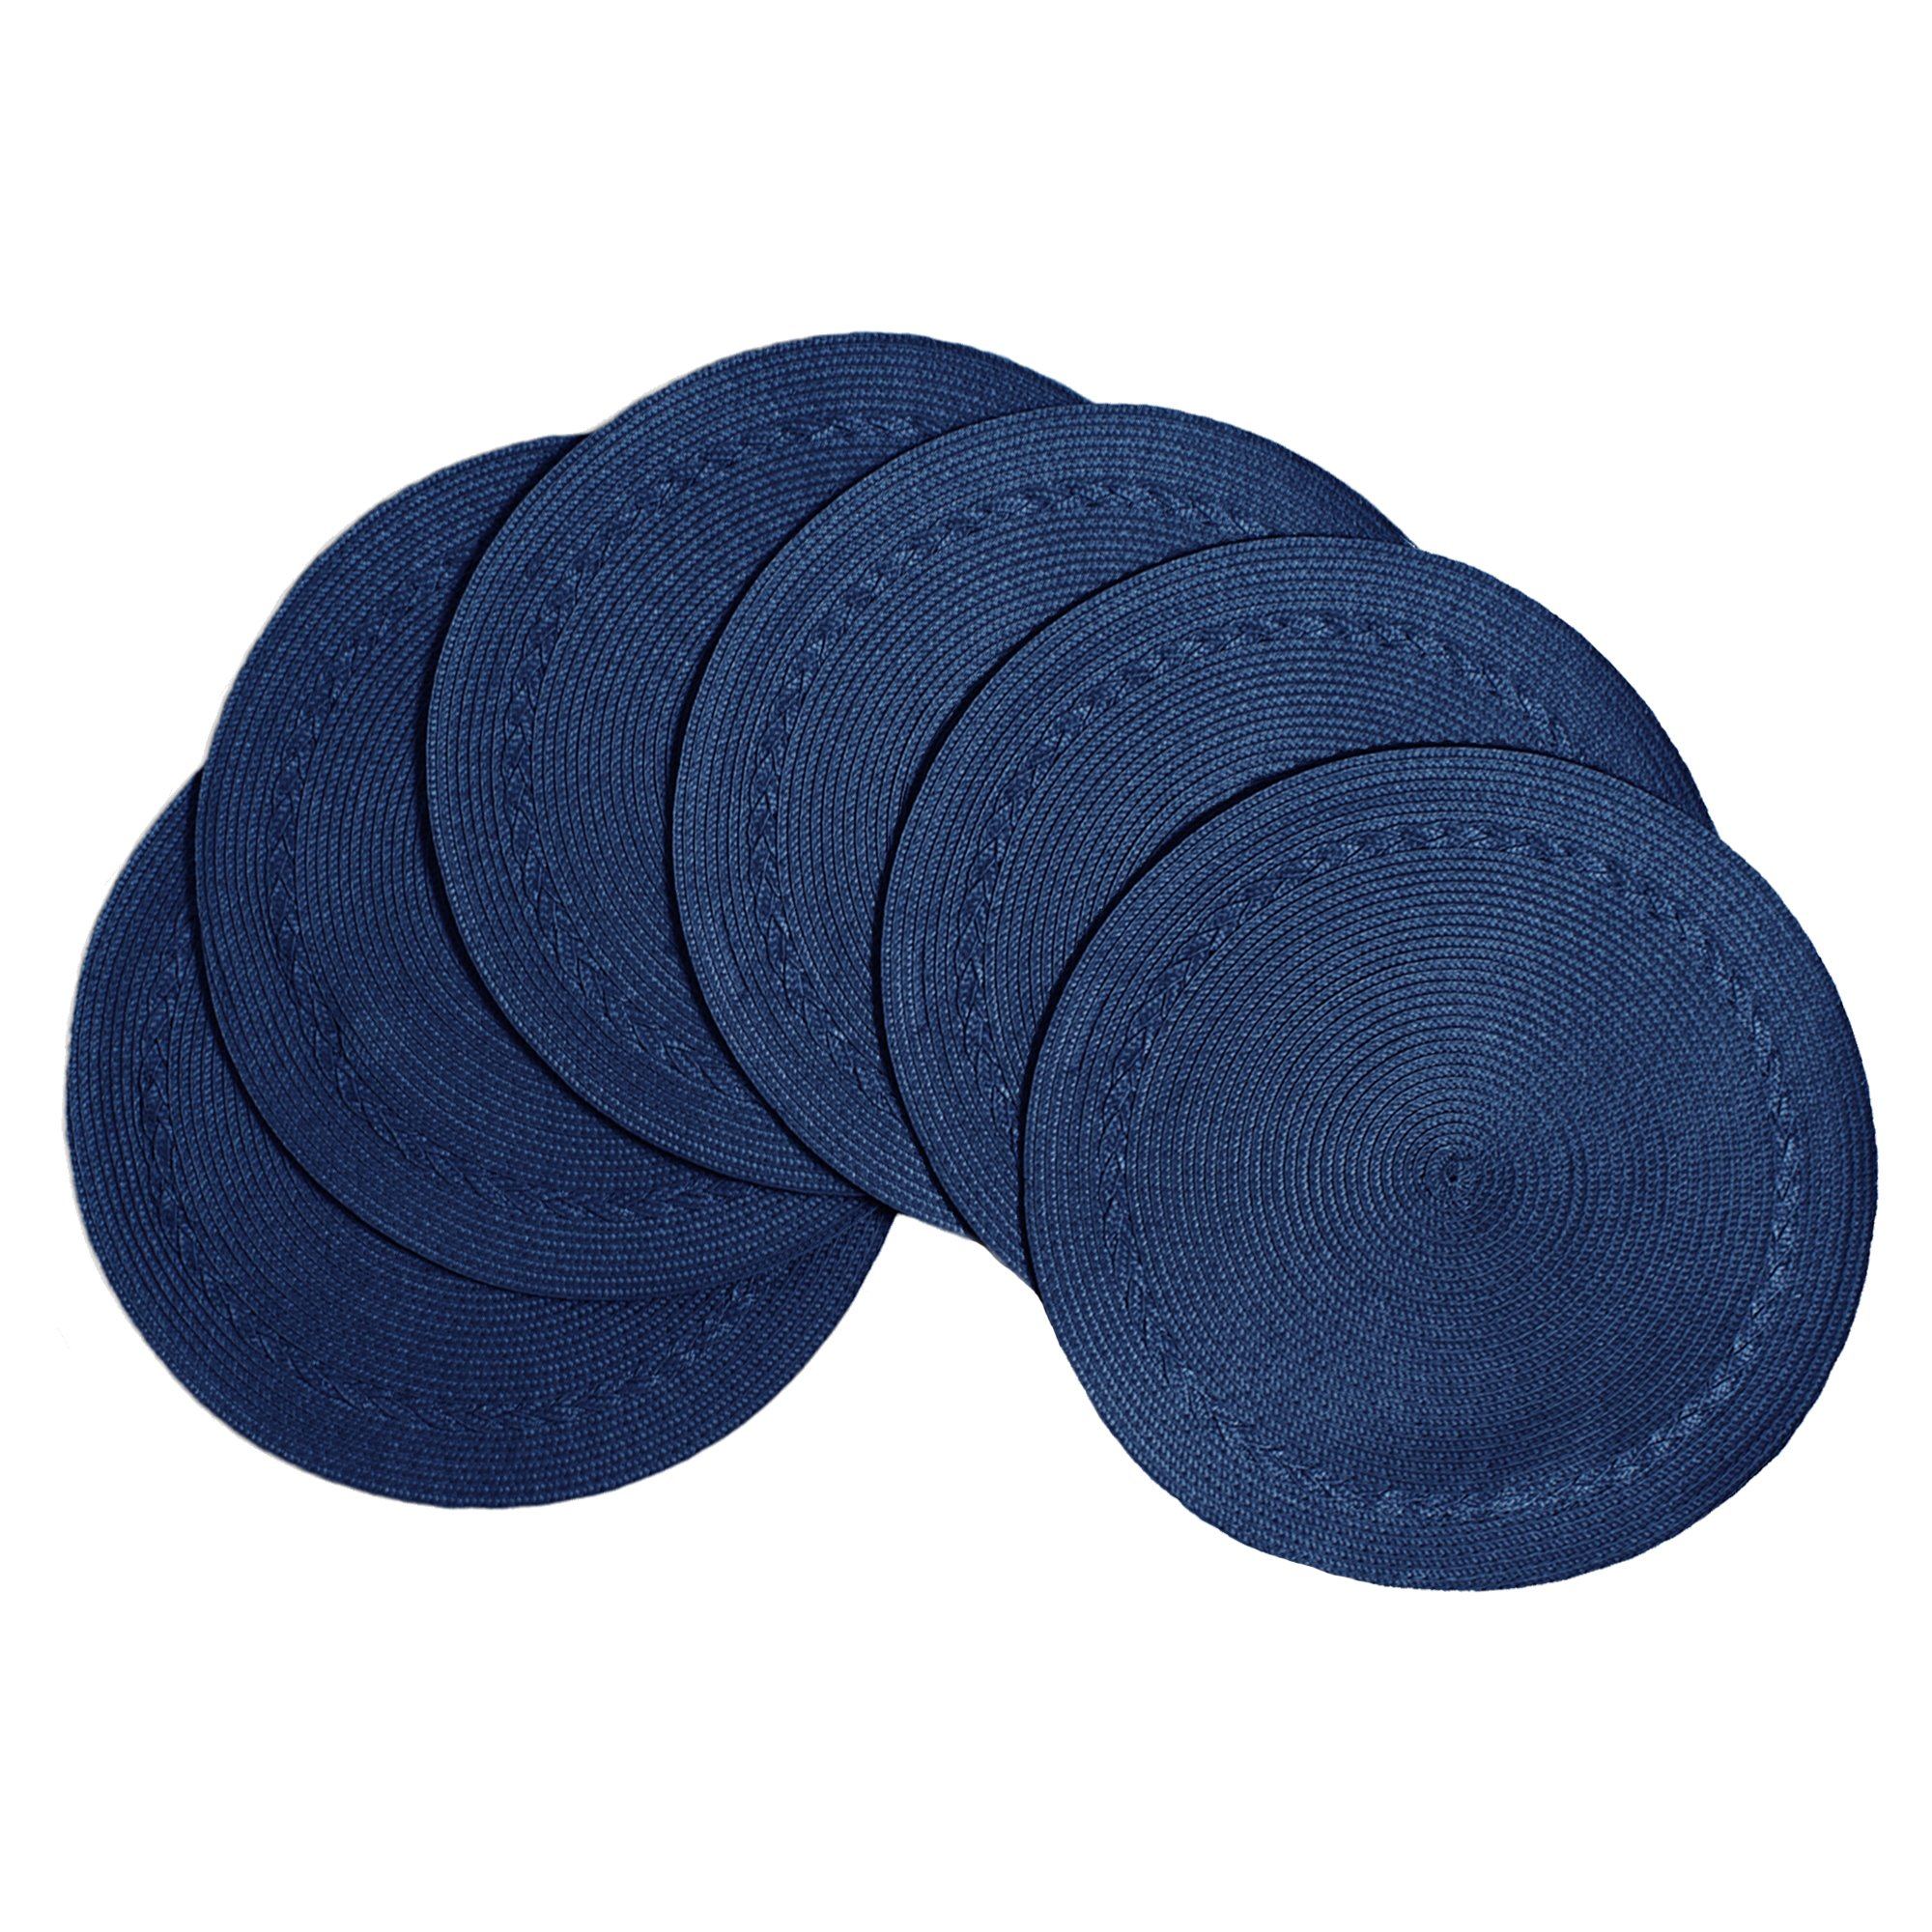 Benson Mills Braided Edge Round Placemats (Set of 6), 15'', Navy